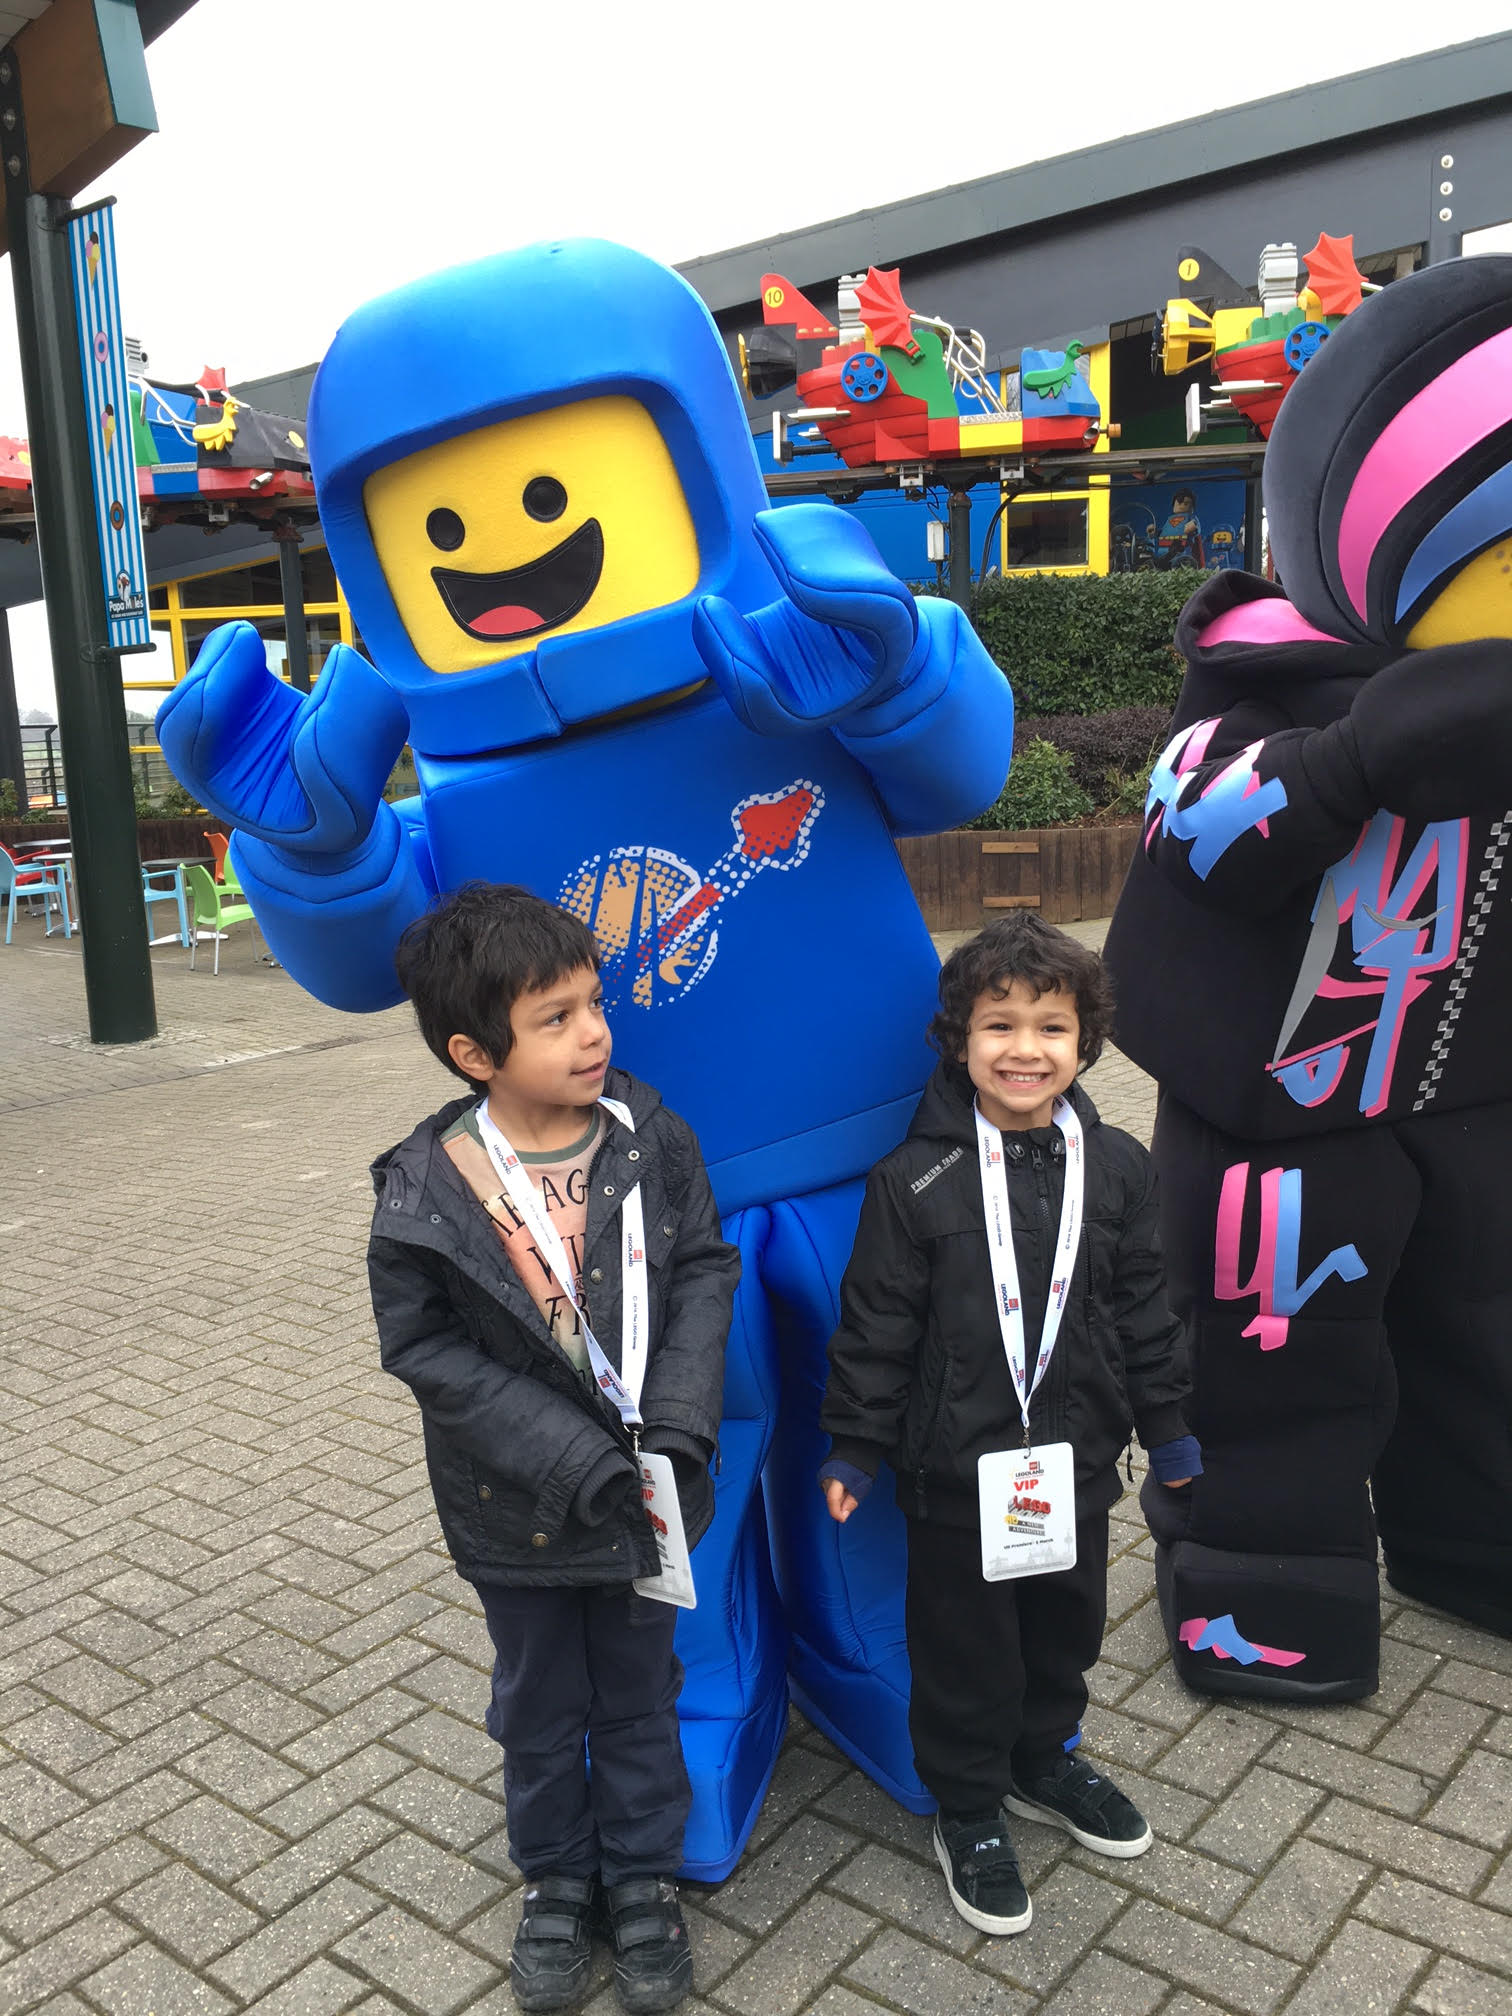 new 4d adventure at legoland windsor, premiere